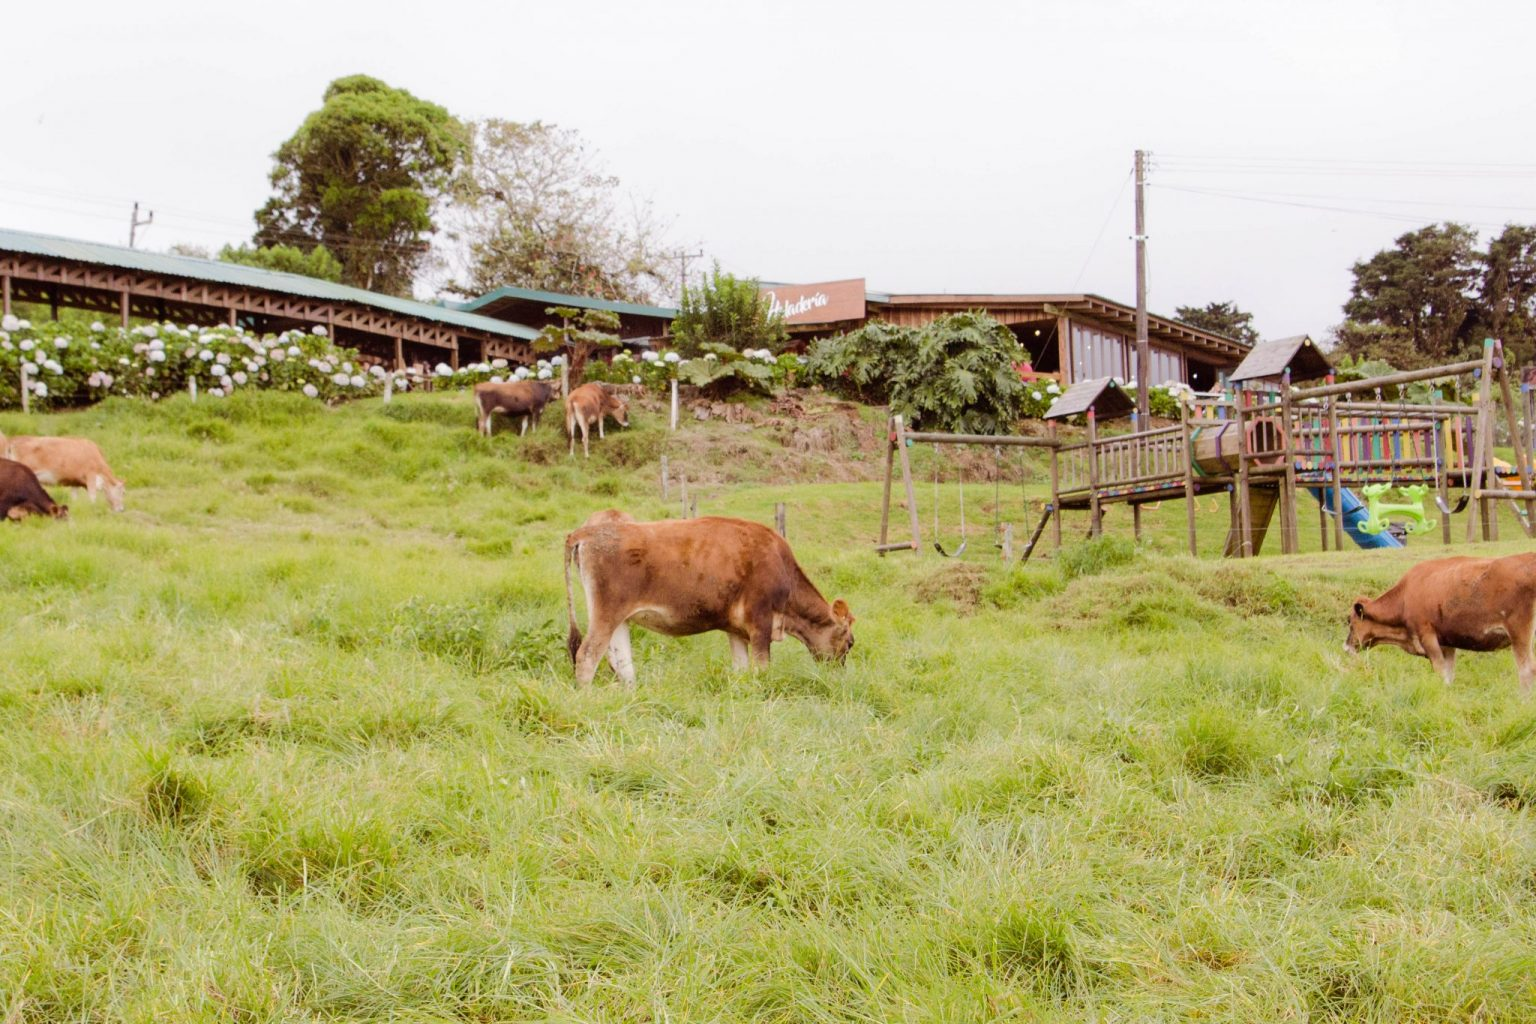 Corso Lecheria is one of the things to do in Costa Rica with kids